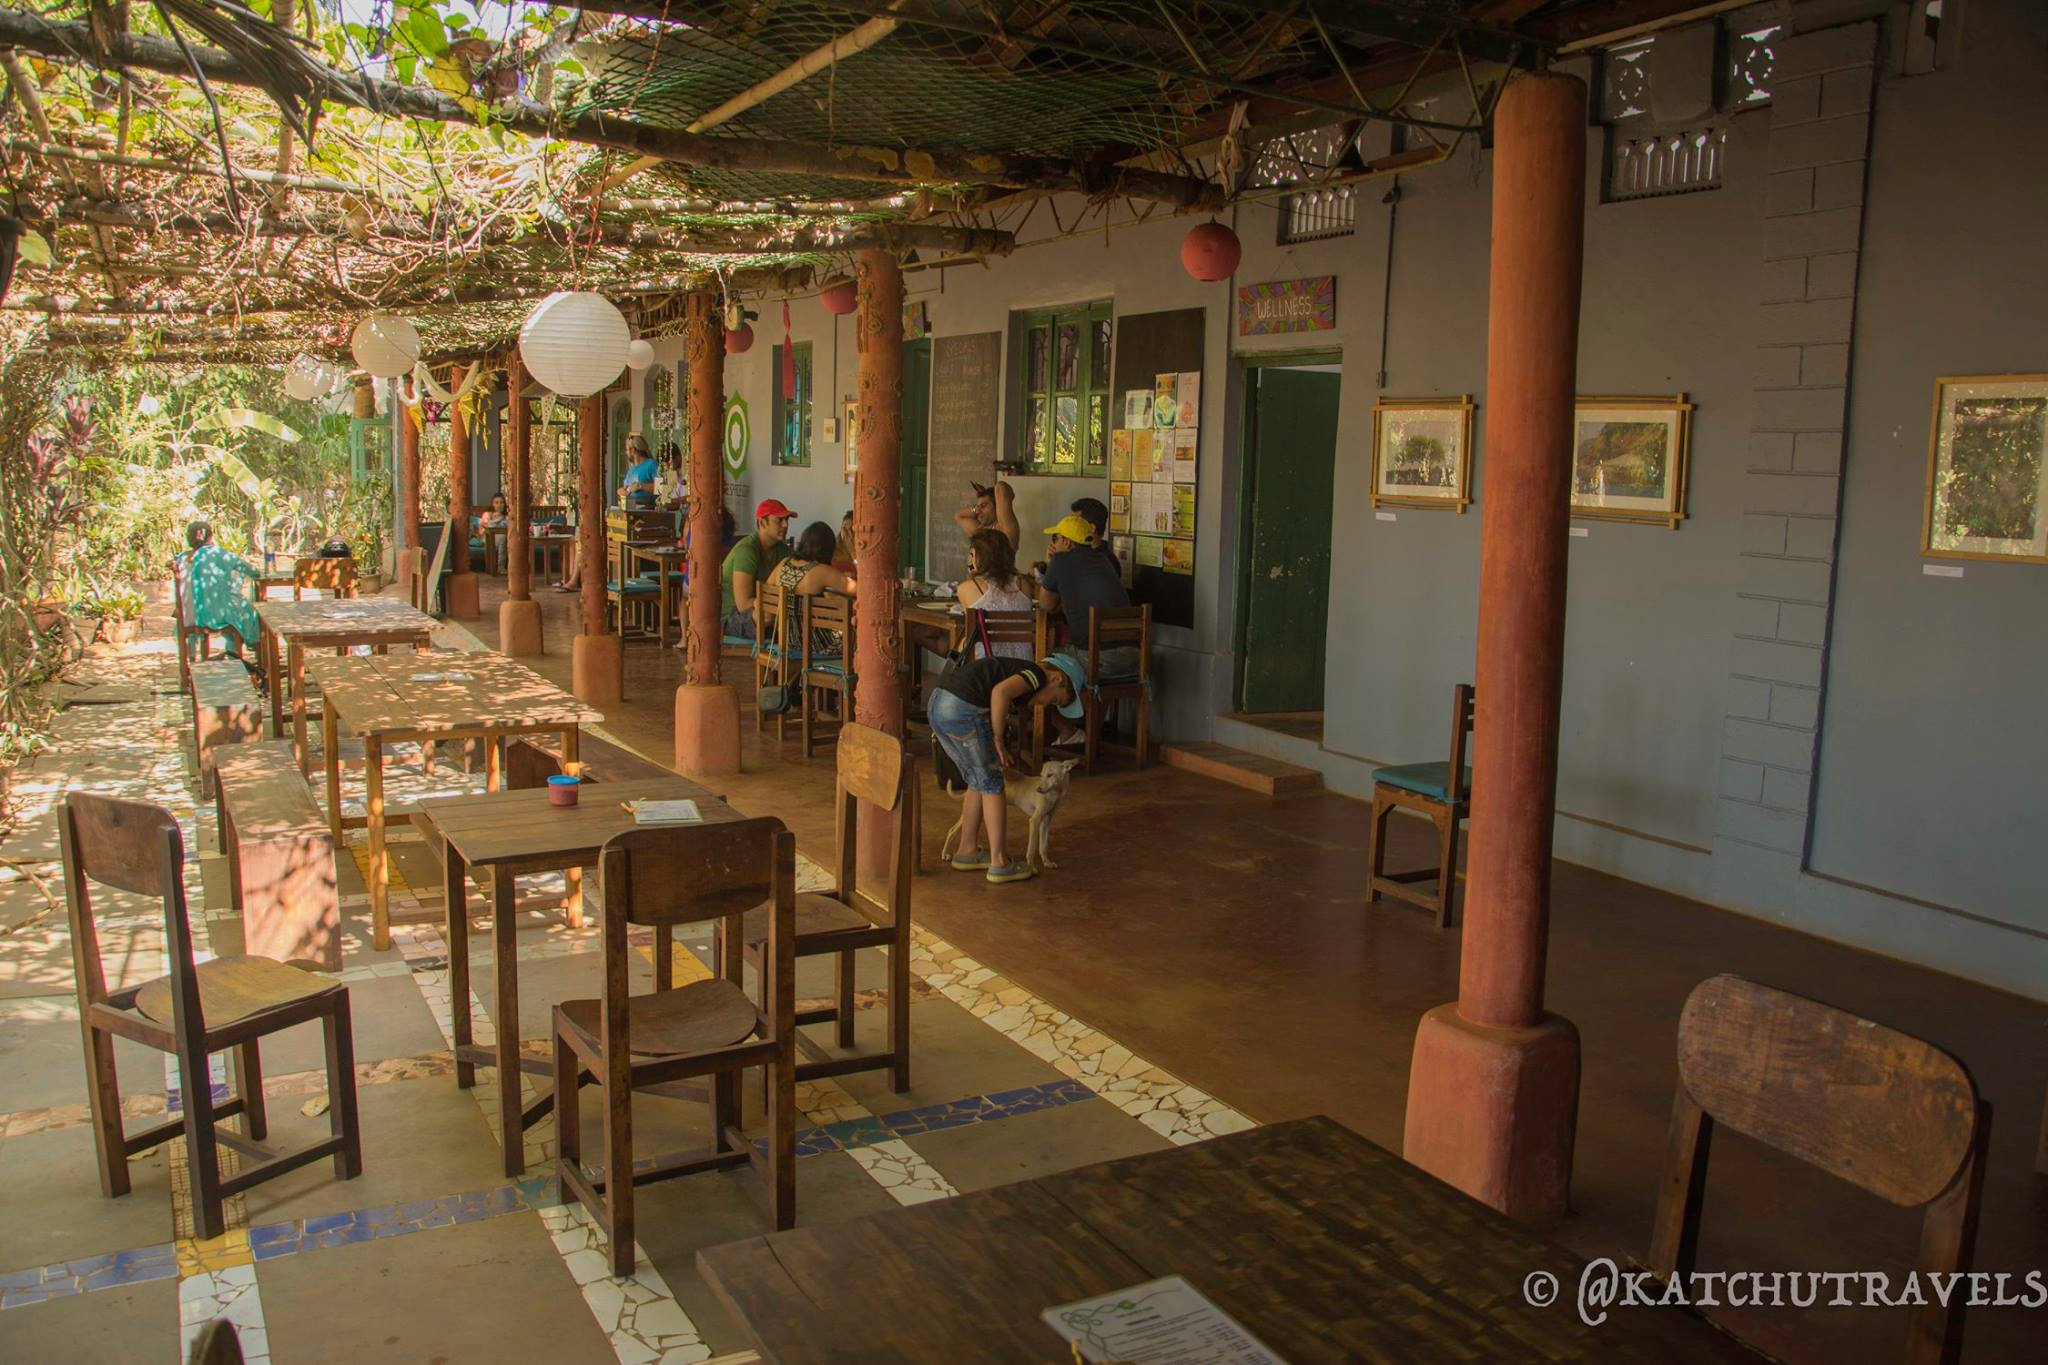 The Space(Devbag) has an Old-Goa rustic and chic look to it